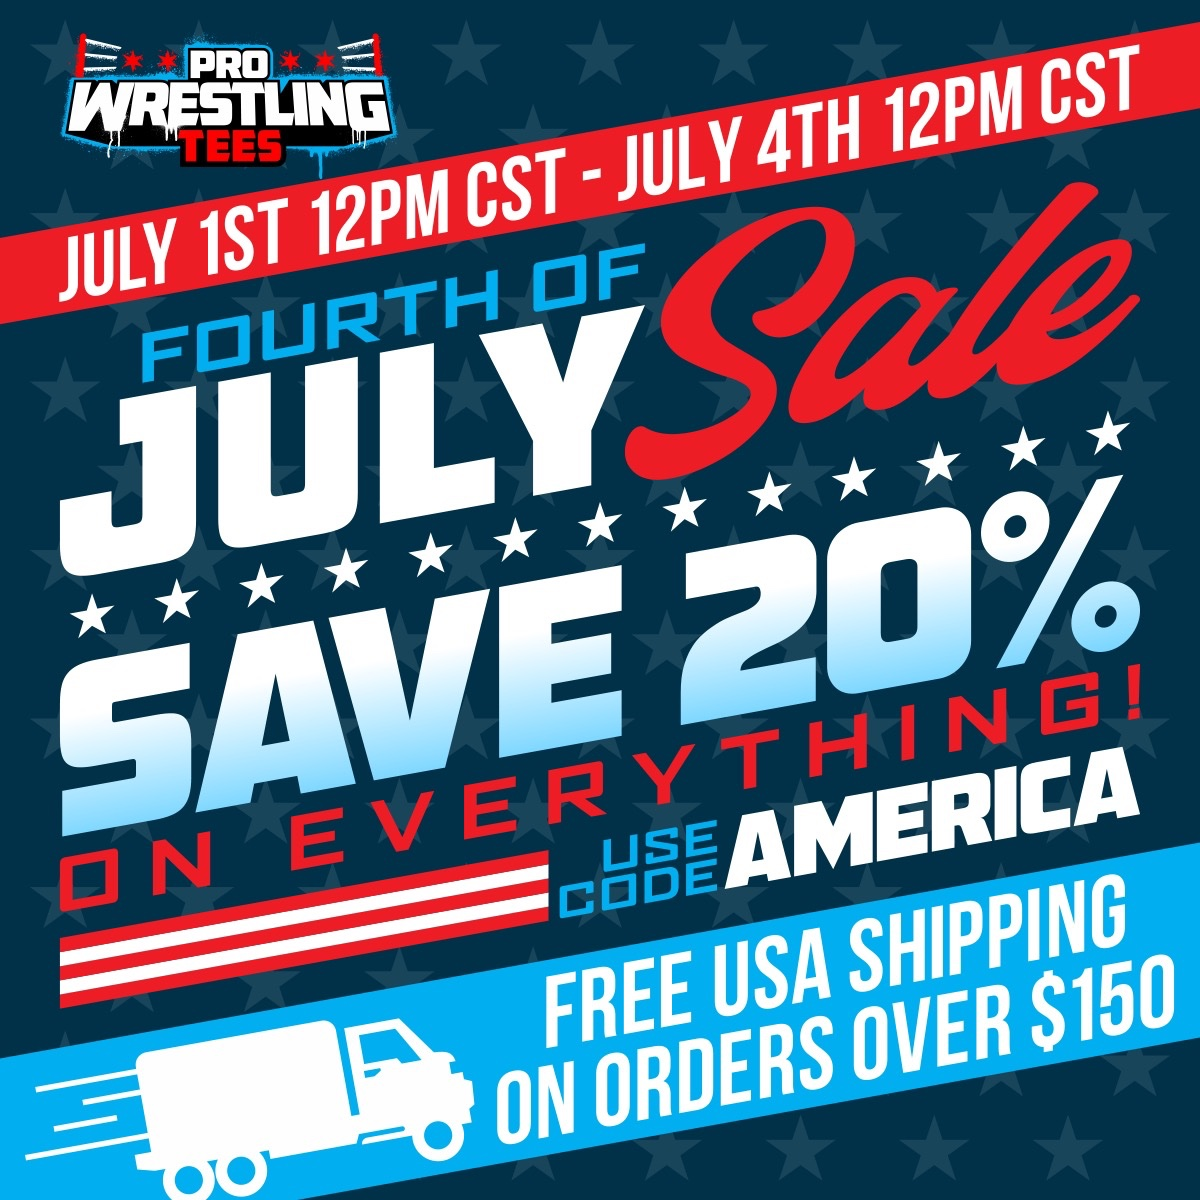 Starting this Wednesday 12pm cst at ProWrestlingTees.com. Tons of @AEWrestling 4th of july sale exclusives + brand new Owen Hart merch.